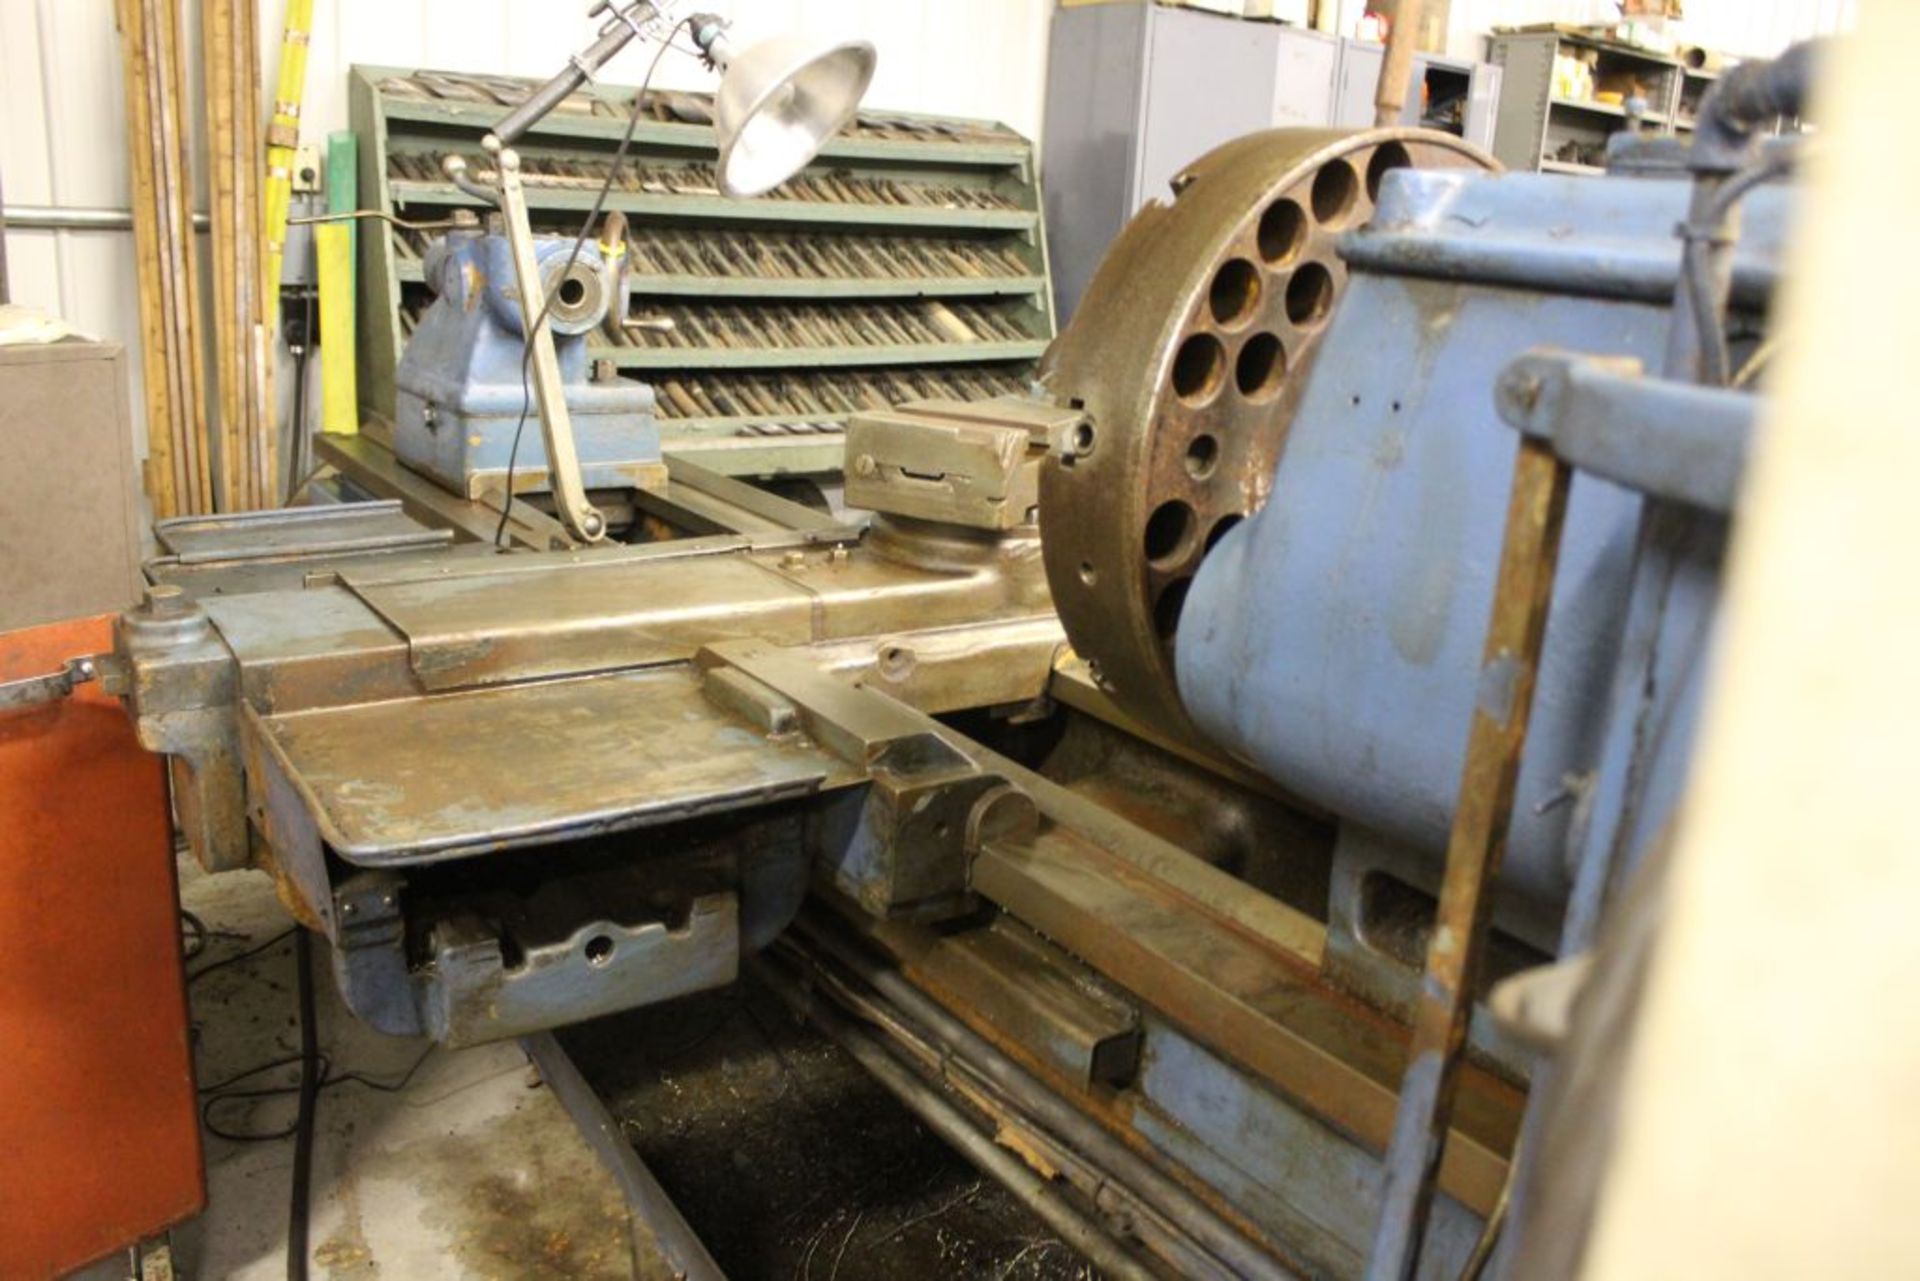 """1952 Monarch lathe, sn 35209, 20"""", 2 1/4"""" hole, 96"""" bed, 27.5 swing, 72"""" center to center, tooling - Image 7 of 12"""